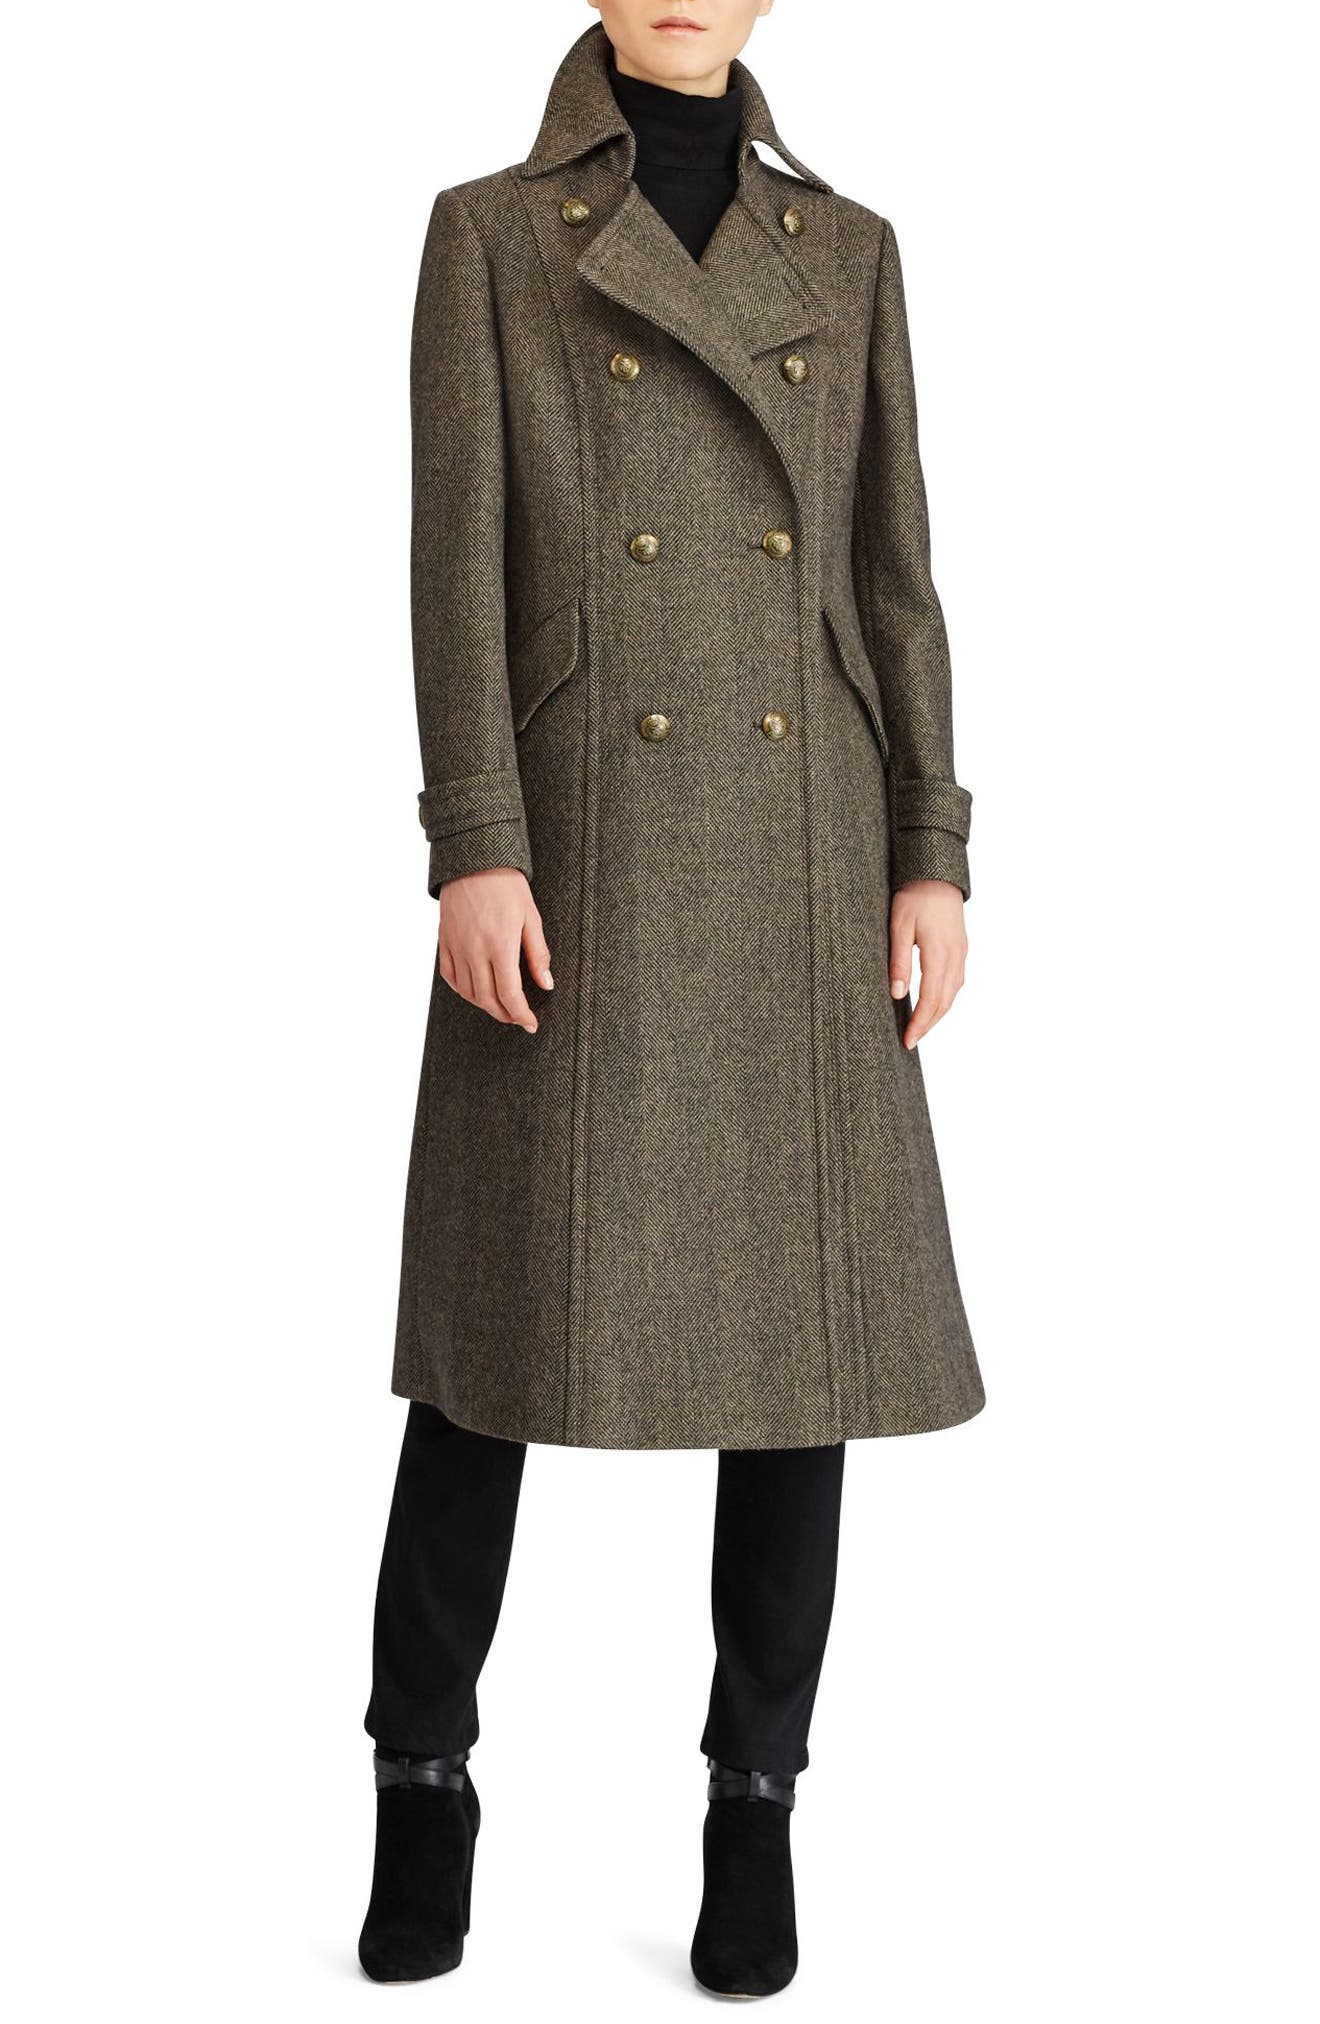 Lauren Ralph Lauren Herringbone Wool Blend Long Military Coat